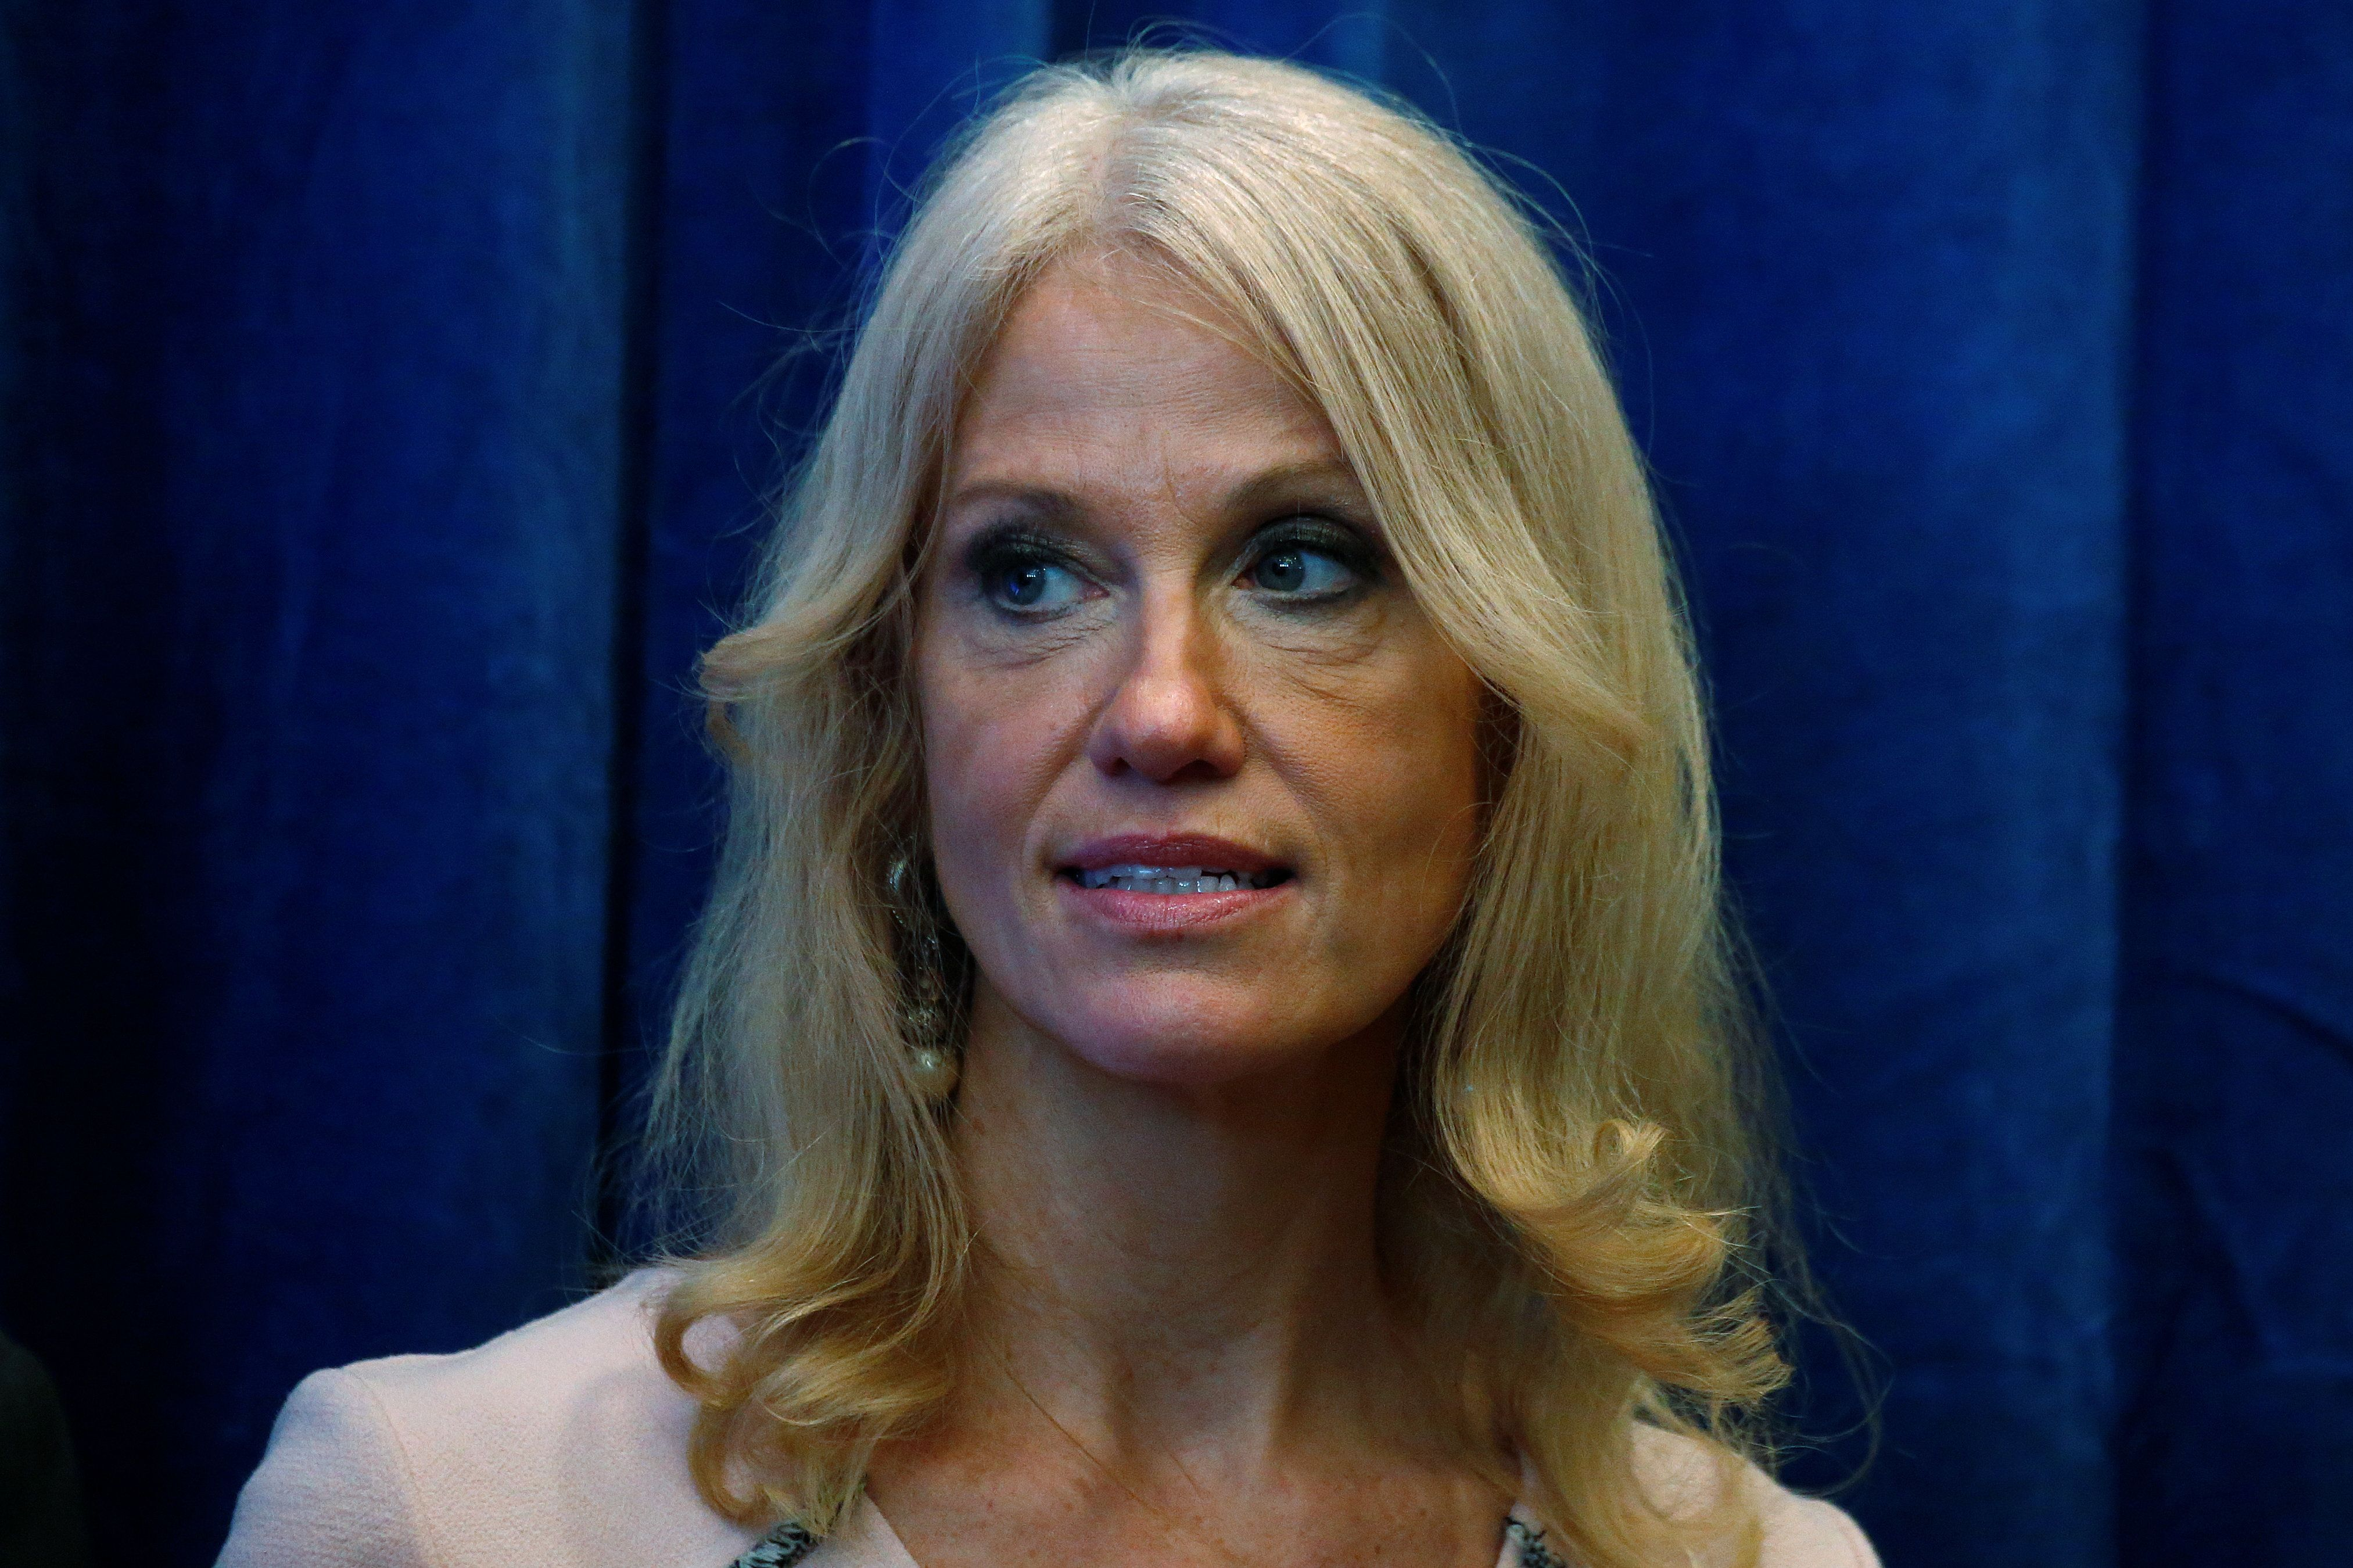 Kellyanne Conway On Trump's Silence To Quebec Mosque Attack: 'He Doesn't Tweet About